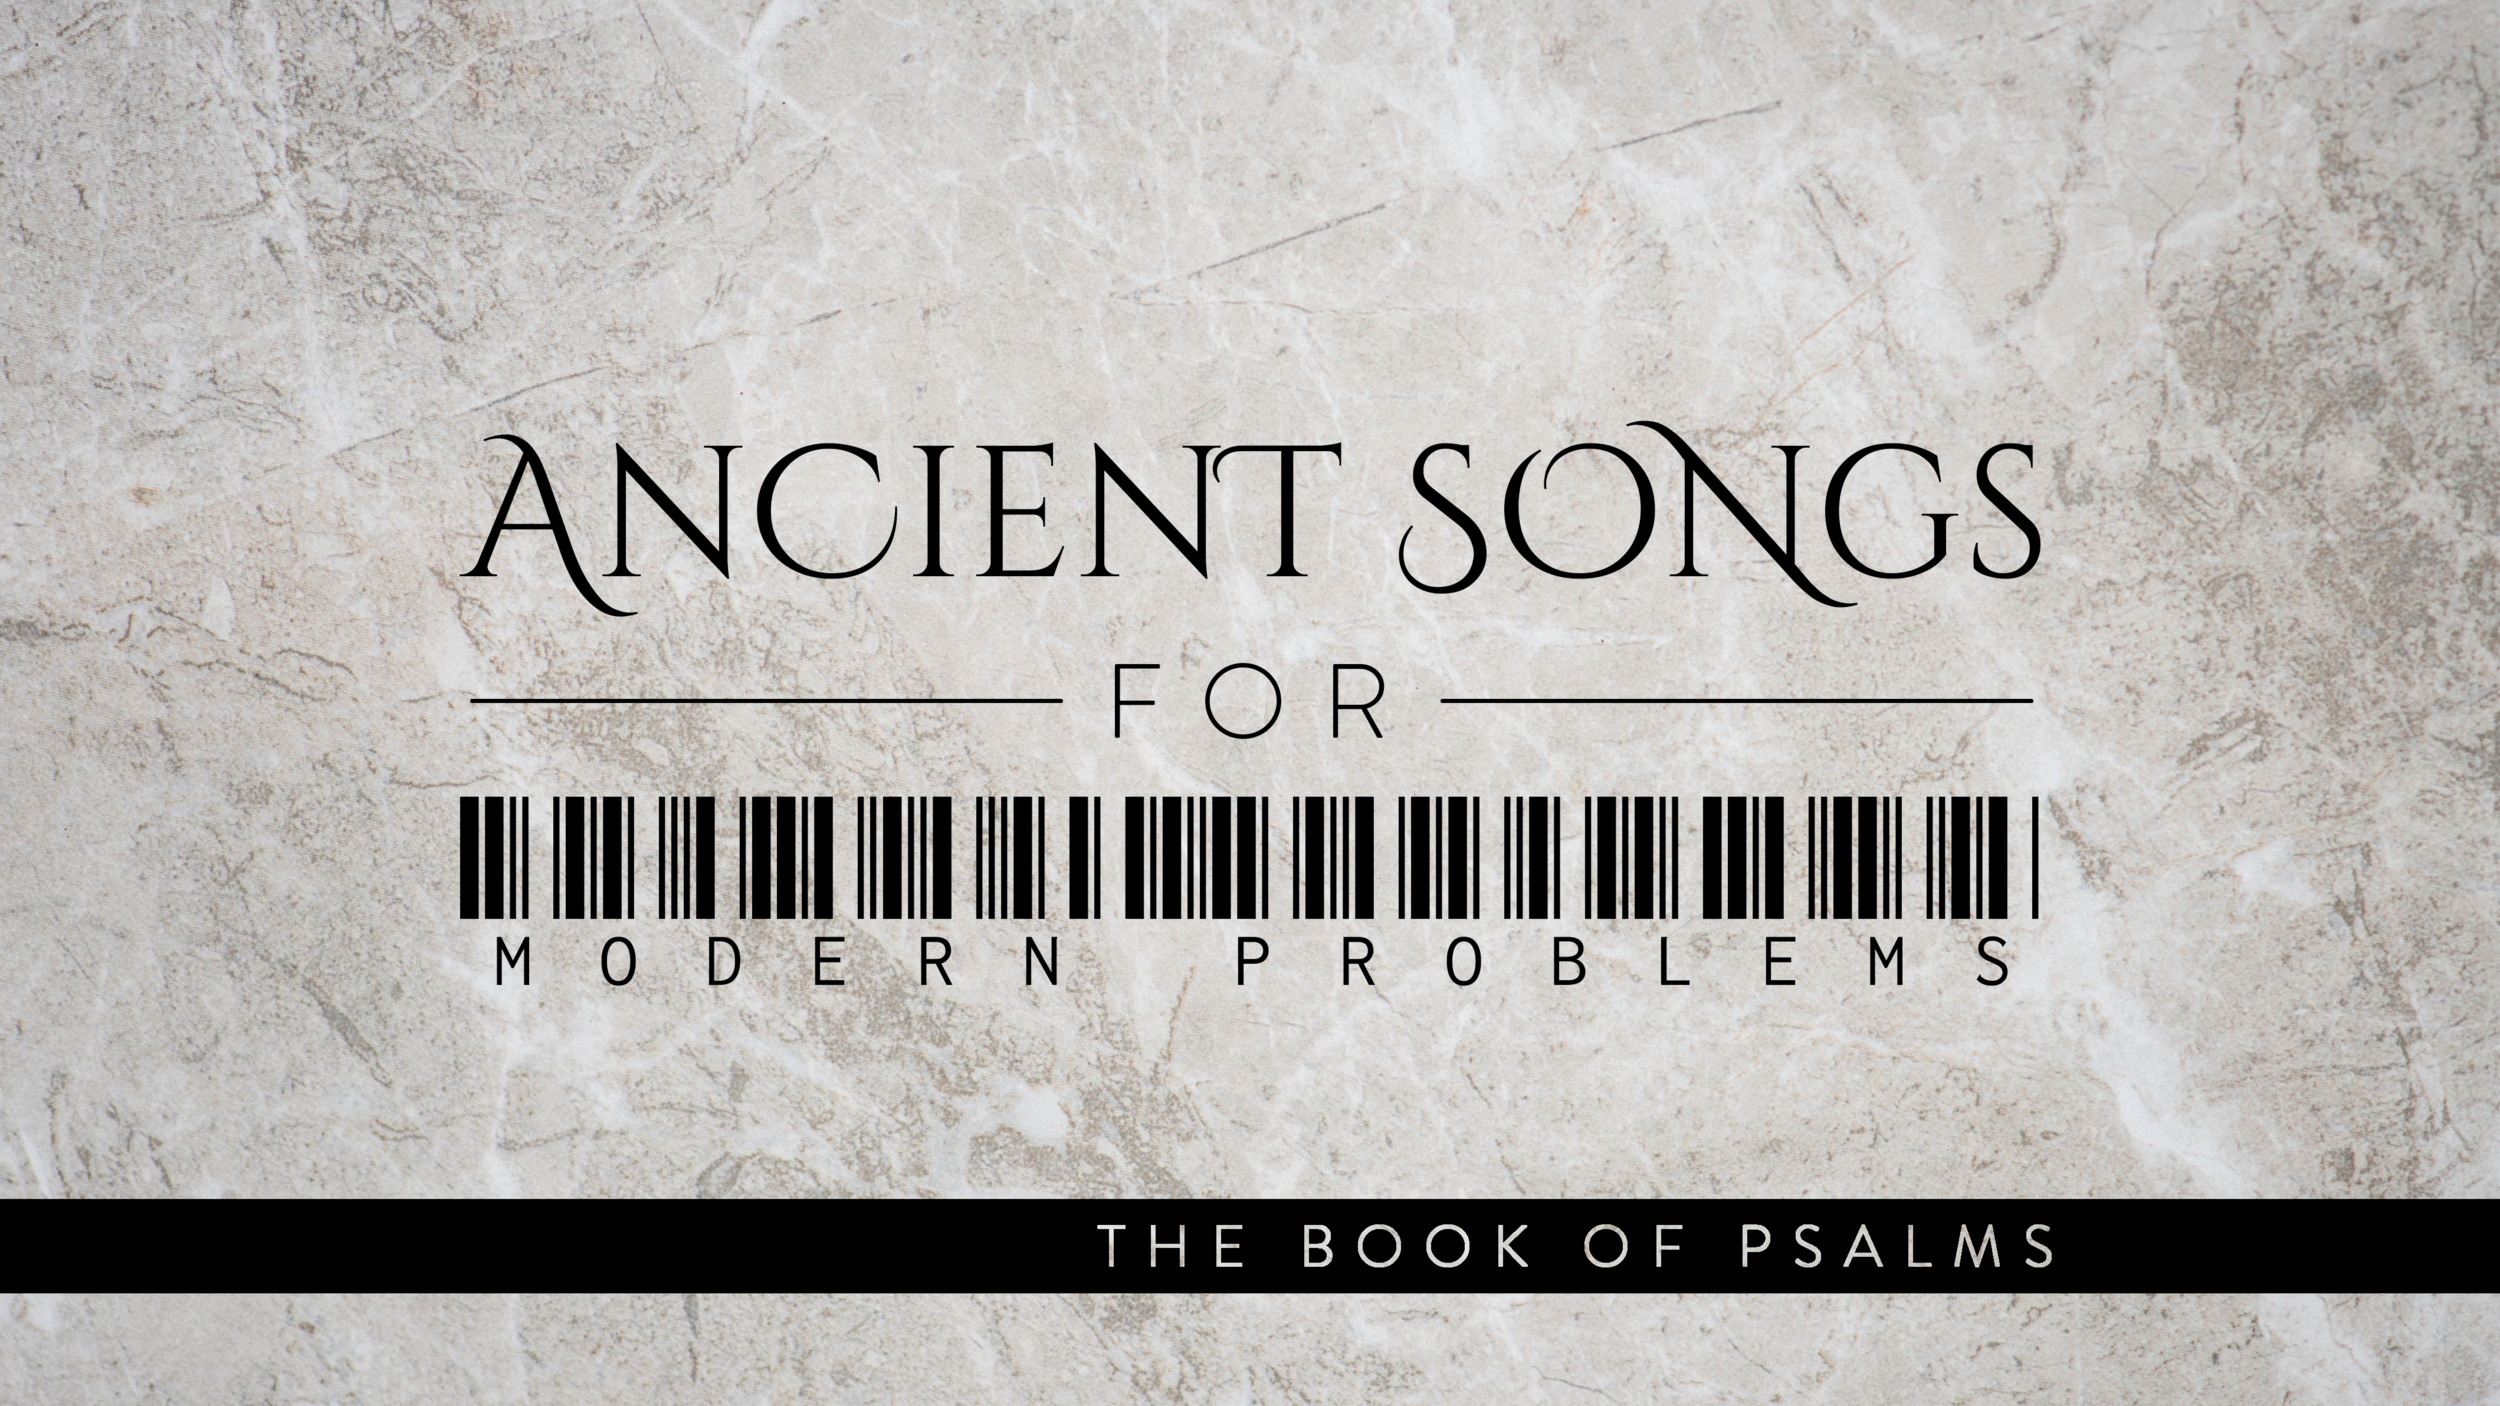 Ancient Songs for Modern Problems - 1. Discovering God's Goodness2. Overcoming Spiritual Dryness3. Overcoming Fatherlessness